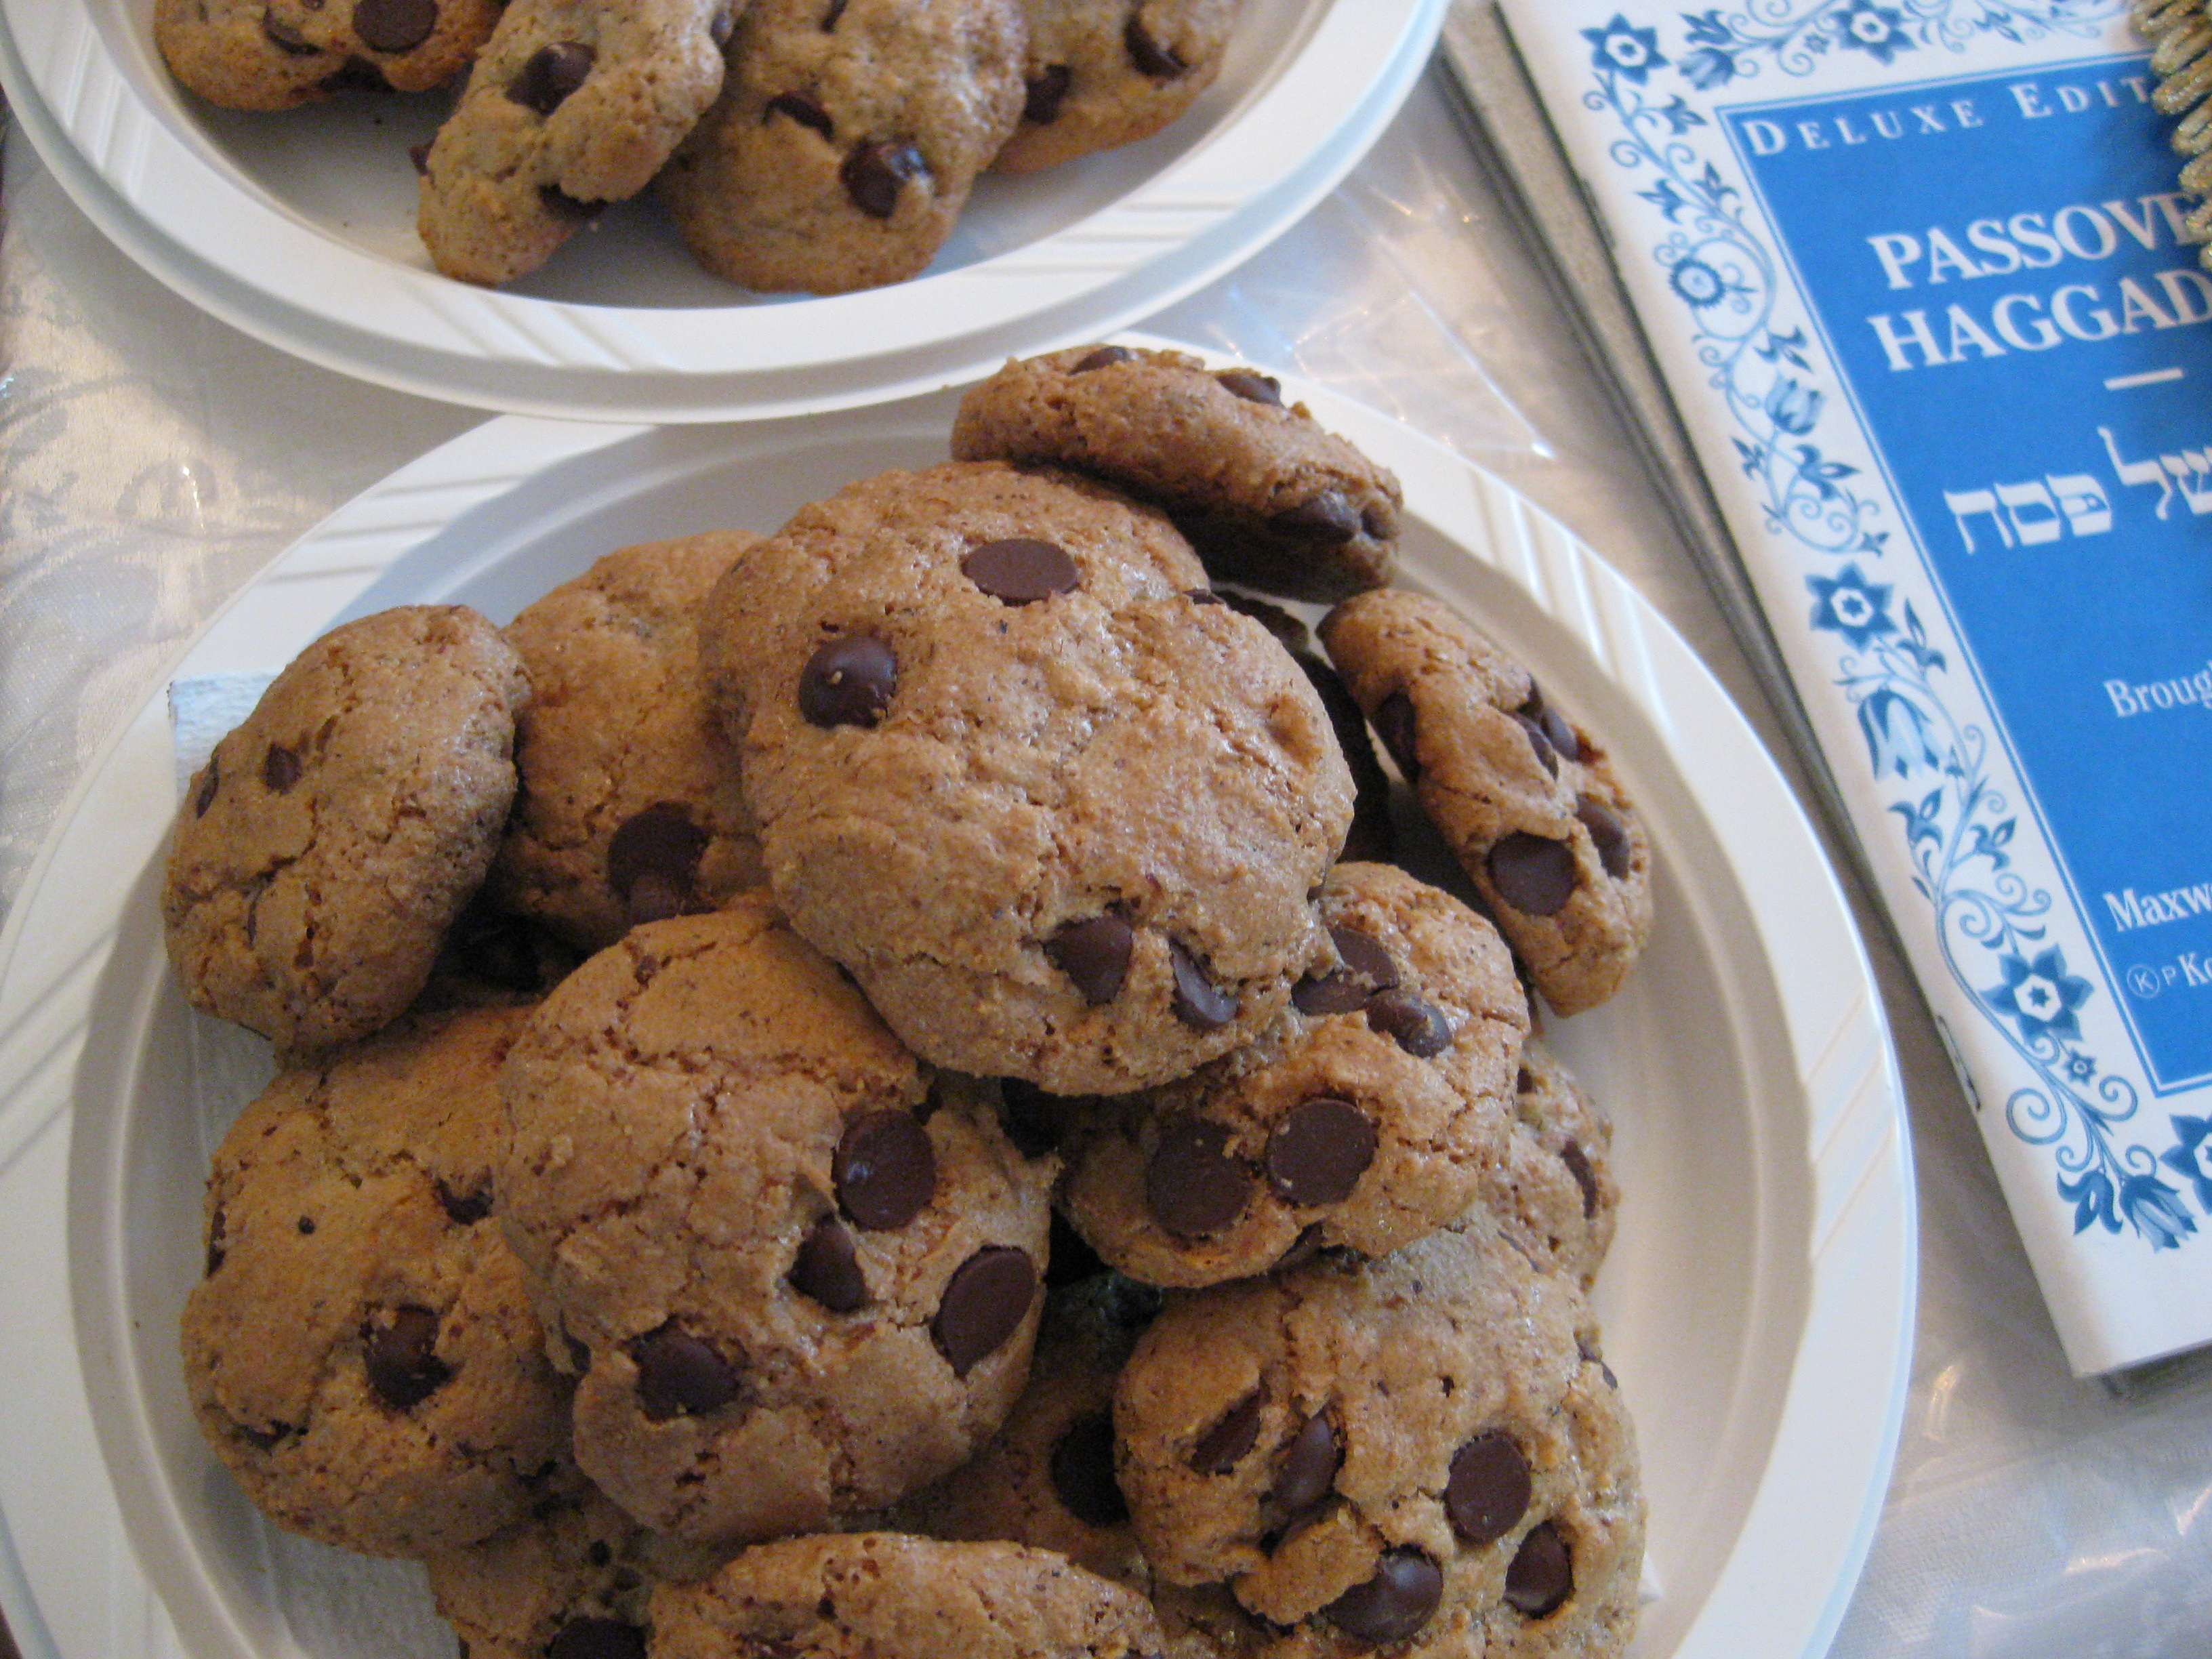 ... chocolate chip cookies for passover usually chocolate chip cookies are